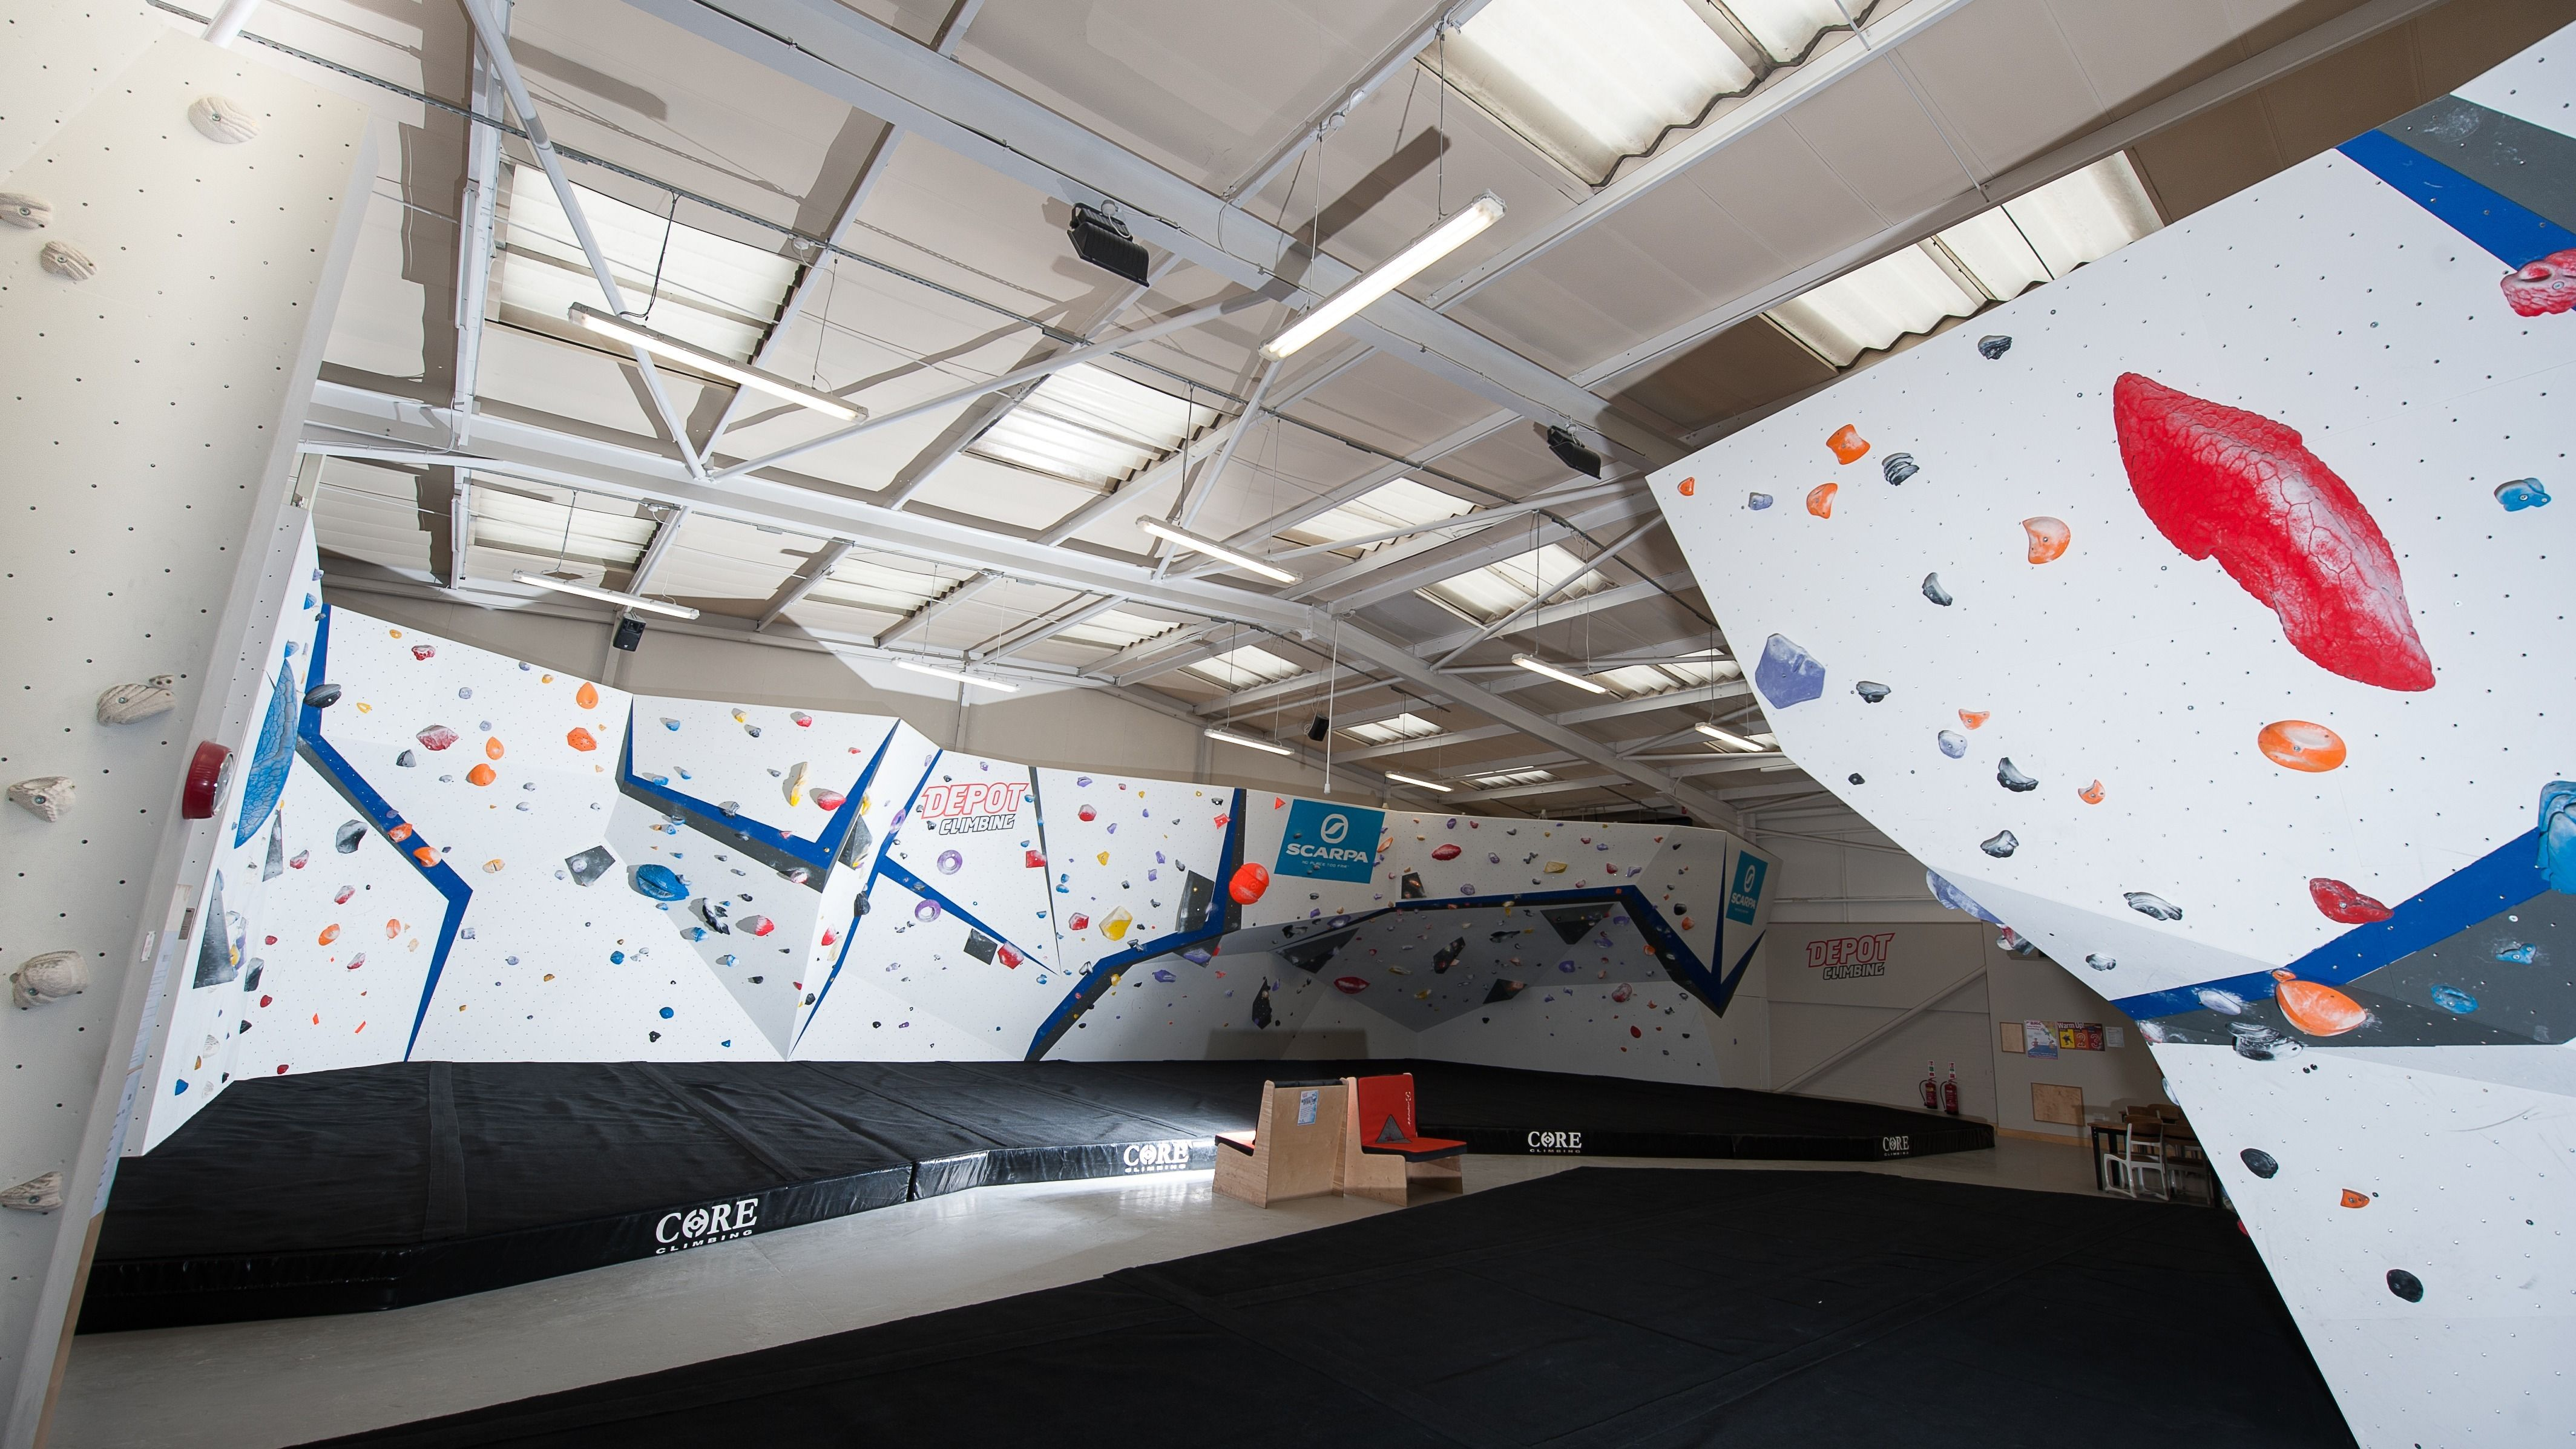 Bouldering at The Depot, Manchester